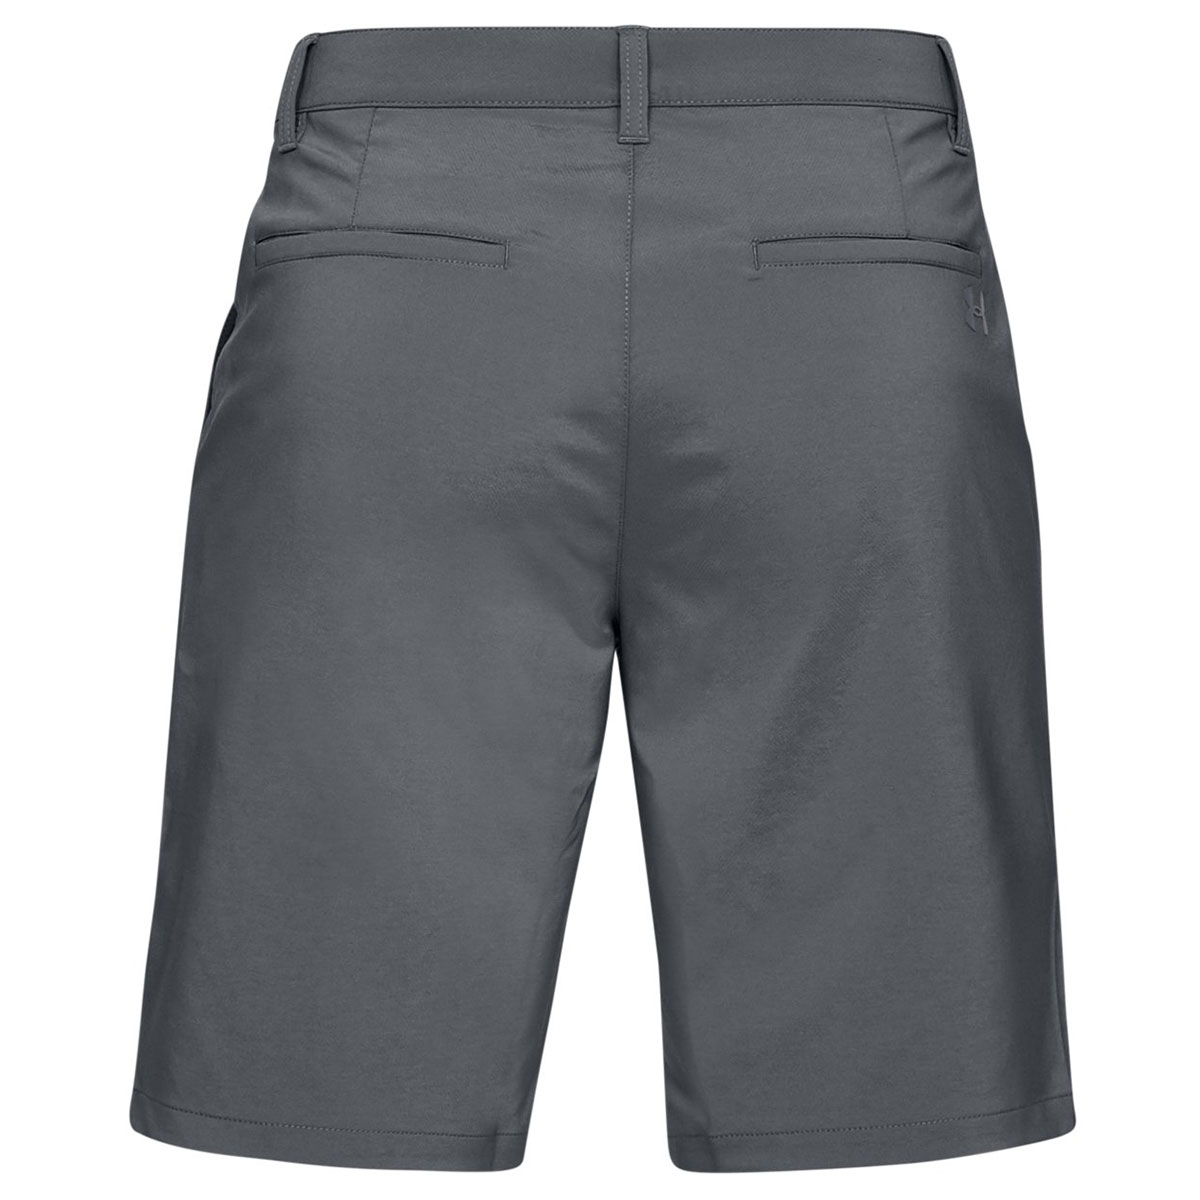 Under-Armour-Mens-2019-EU-Tech-Stretch-Soft-Tapered-Fitted-Golf-Shorts Indexbild 13